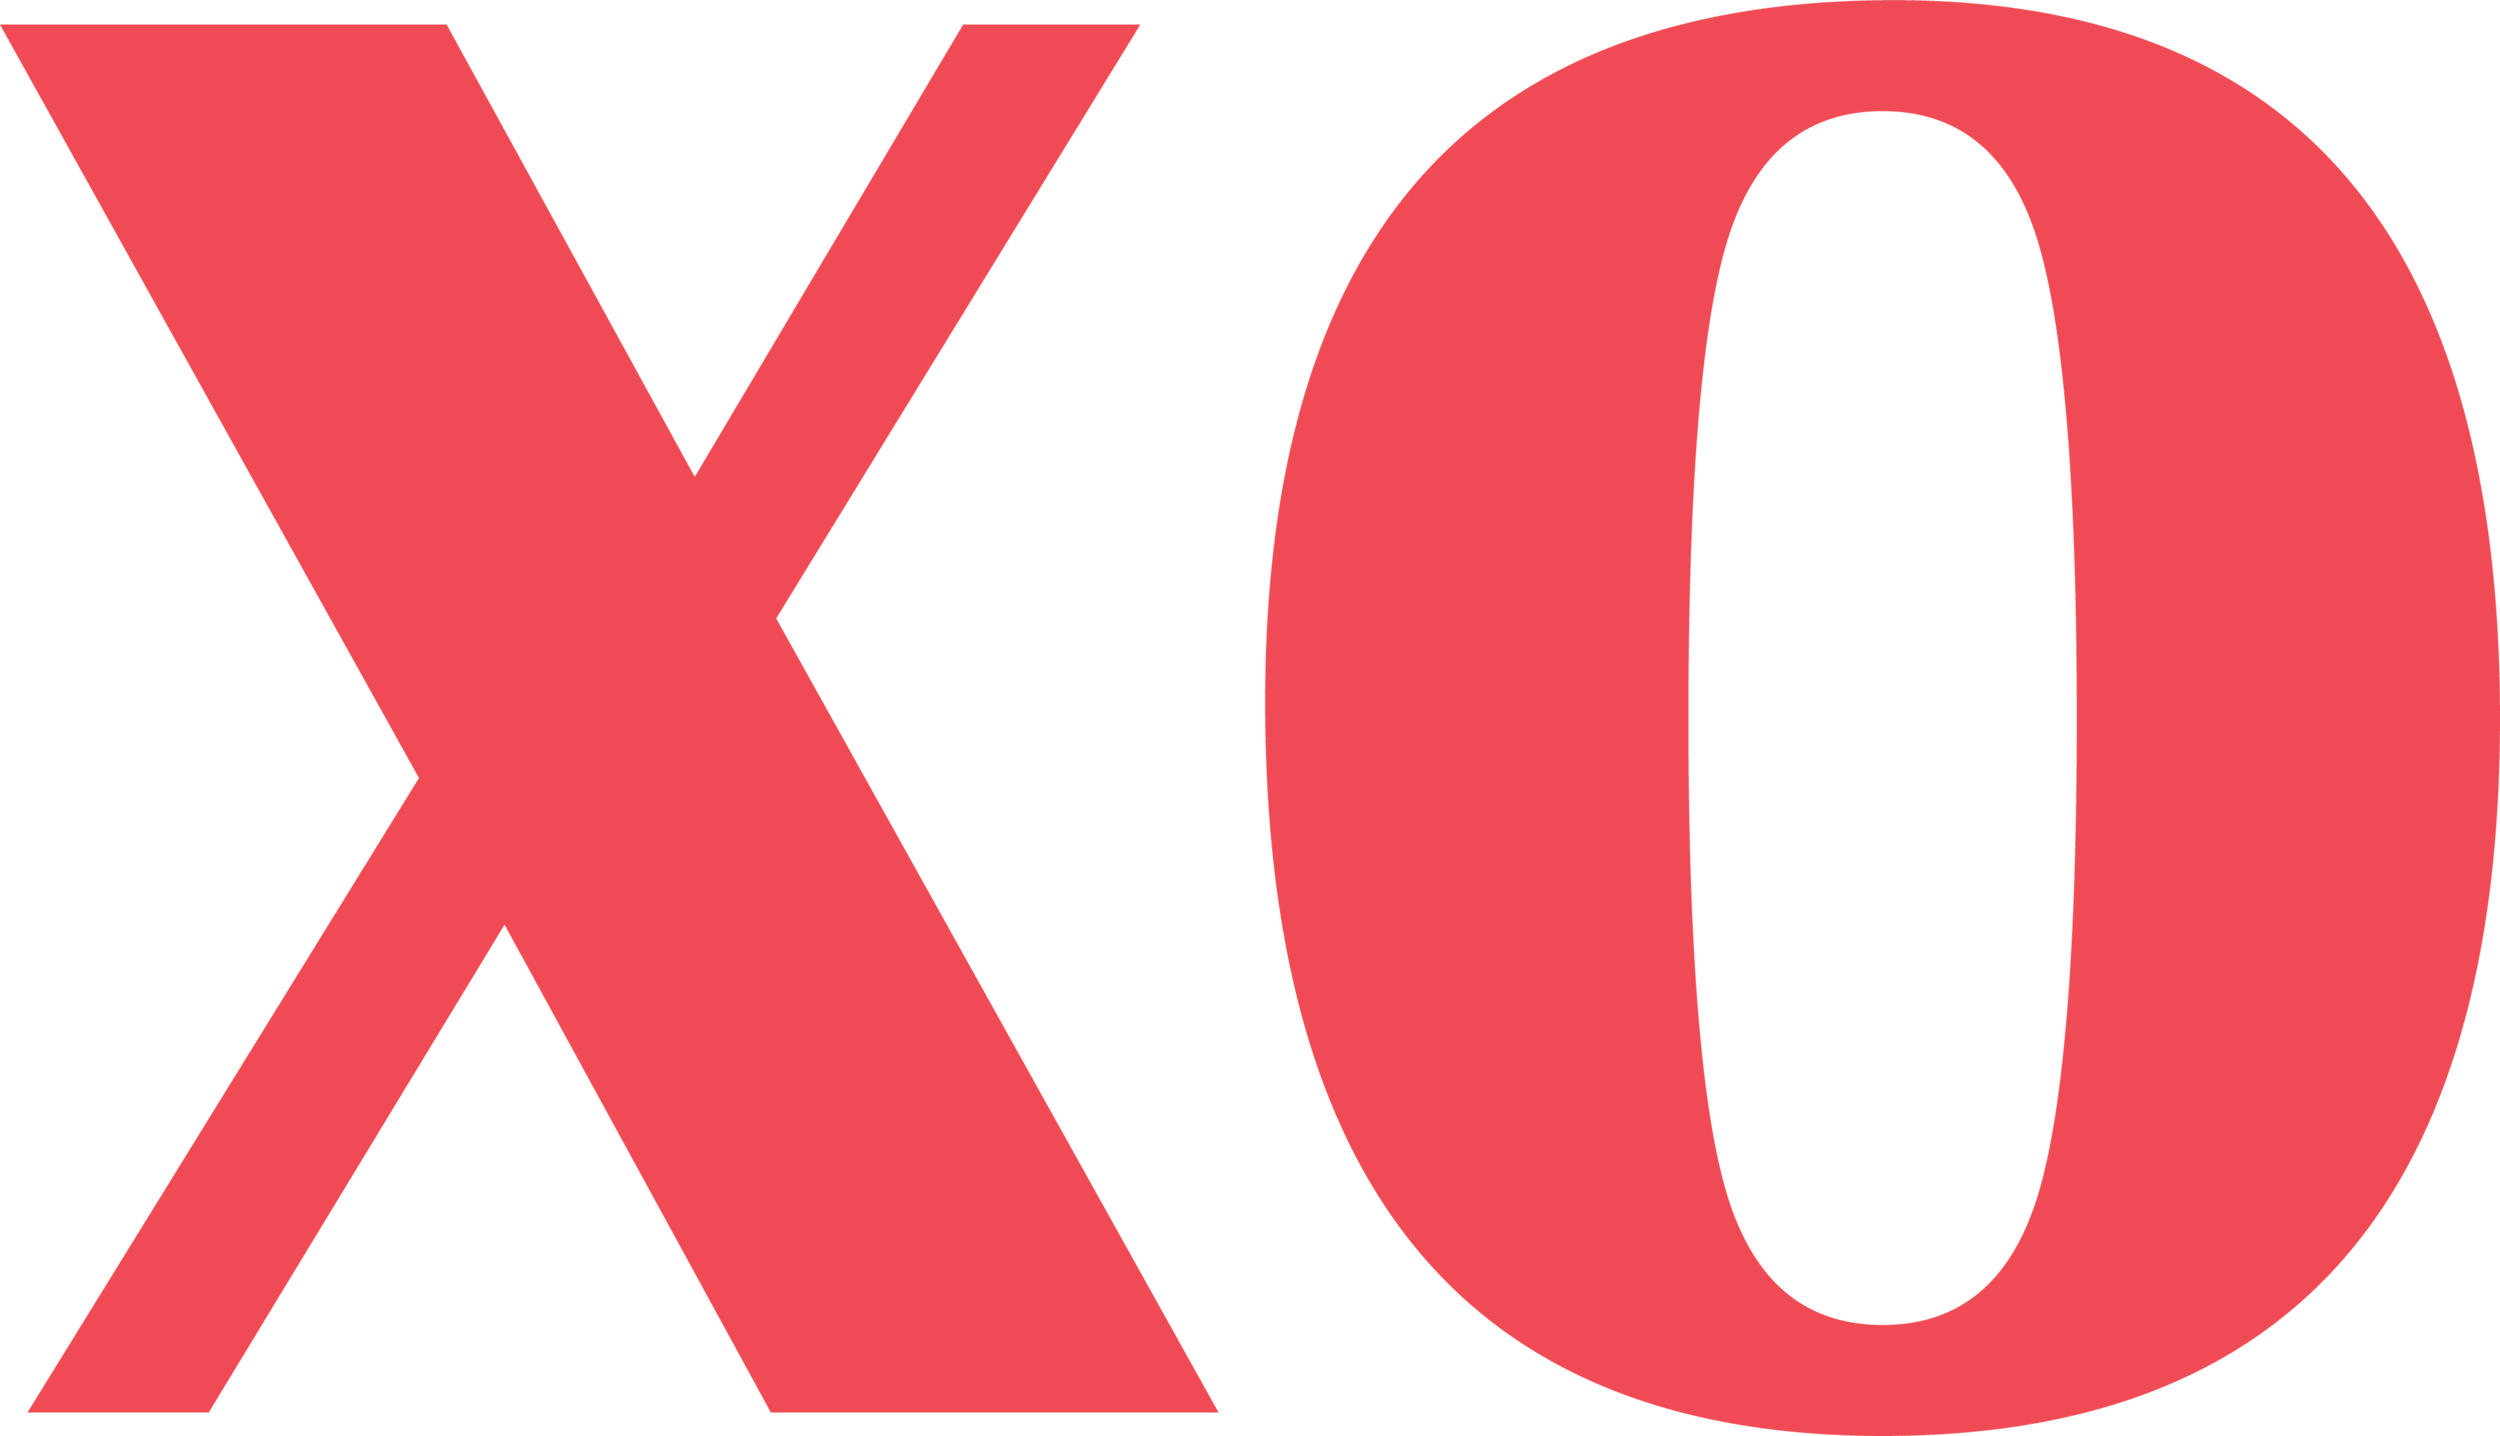 xo wordmark 2.png